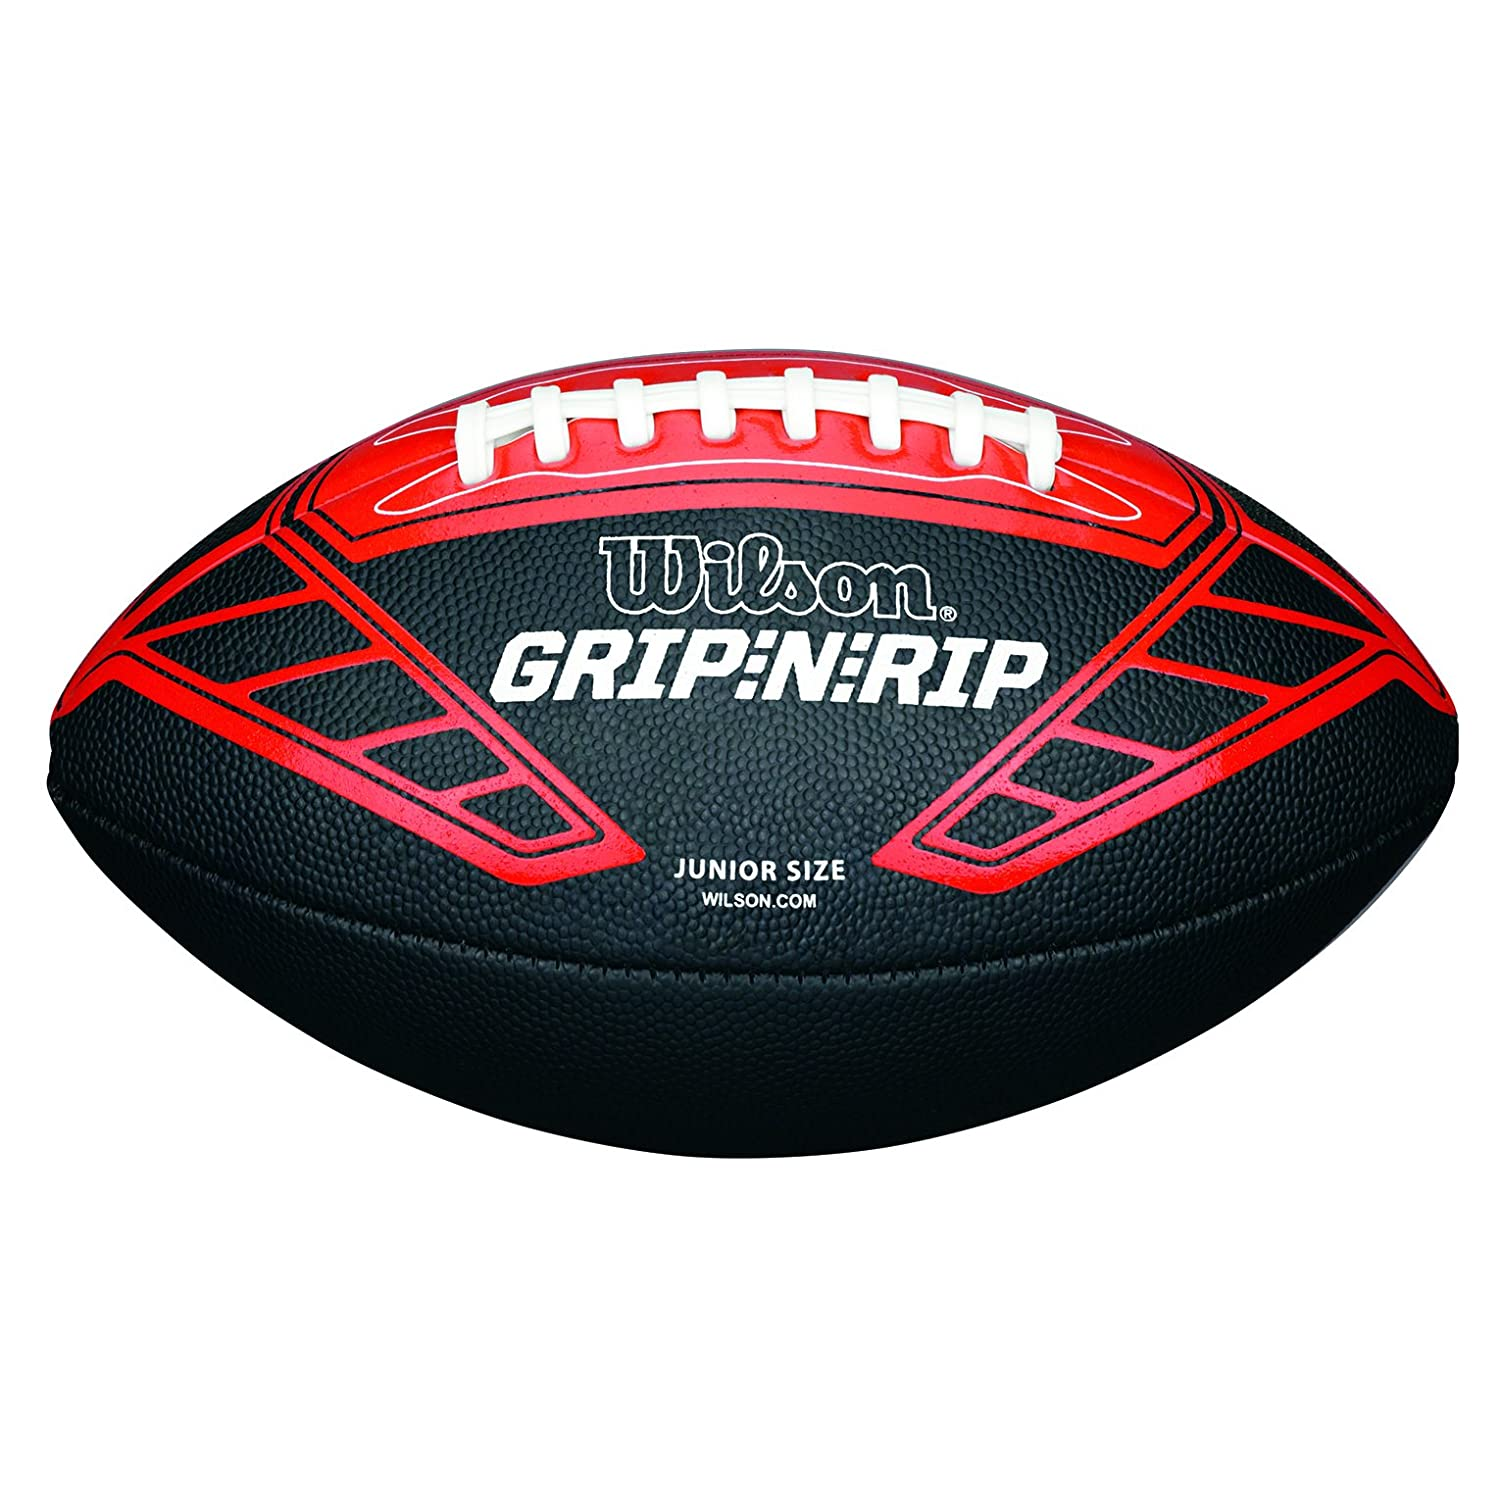 Wilson Ballon Football Américain, Utilisation récréative, Taille Junior, NFL GRIP N RIP JUNIOR FOOTBALL RD, Noir/Rouge, WTF1608XB ballon de football americain ballon de sport ballon de foot americain ballon de foot americain cuir